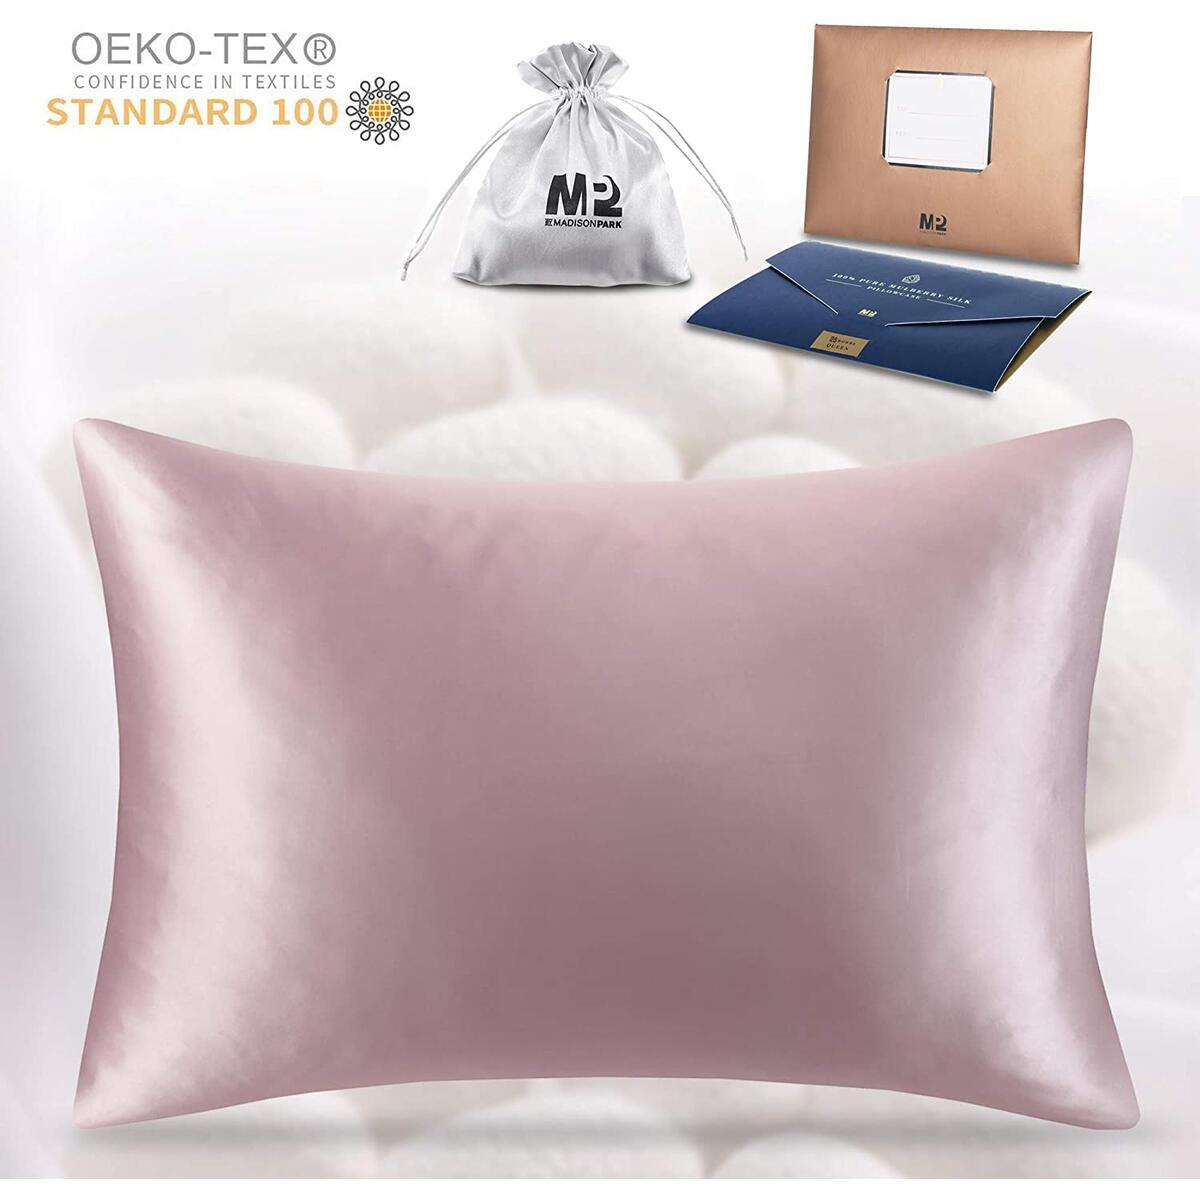 Silk Pillowcase  for Hair and Skin   100% Mulberry Worm, Both Sides 19 Momme 600 Thread Count Pillow Cover w/ Hidden Zipper - 1 Pack, Queen Size, Blush